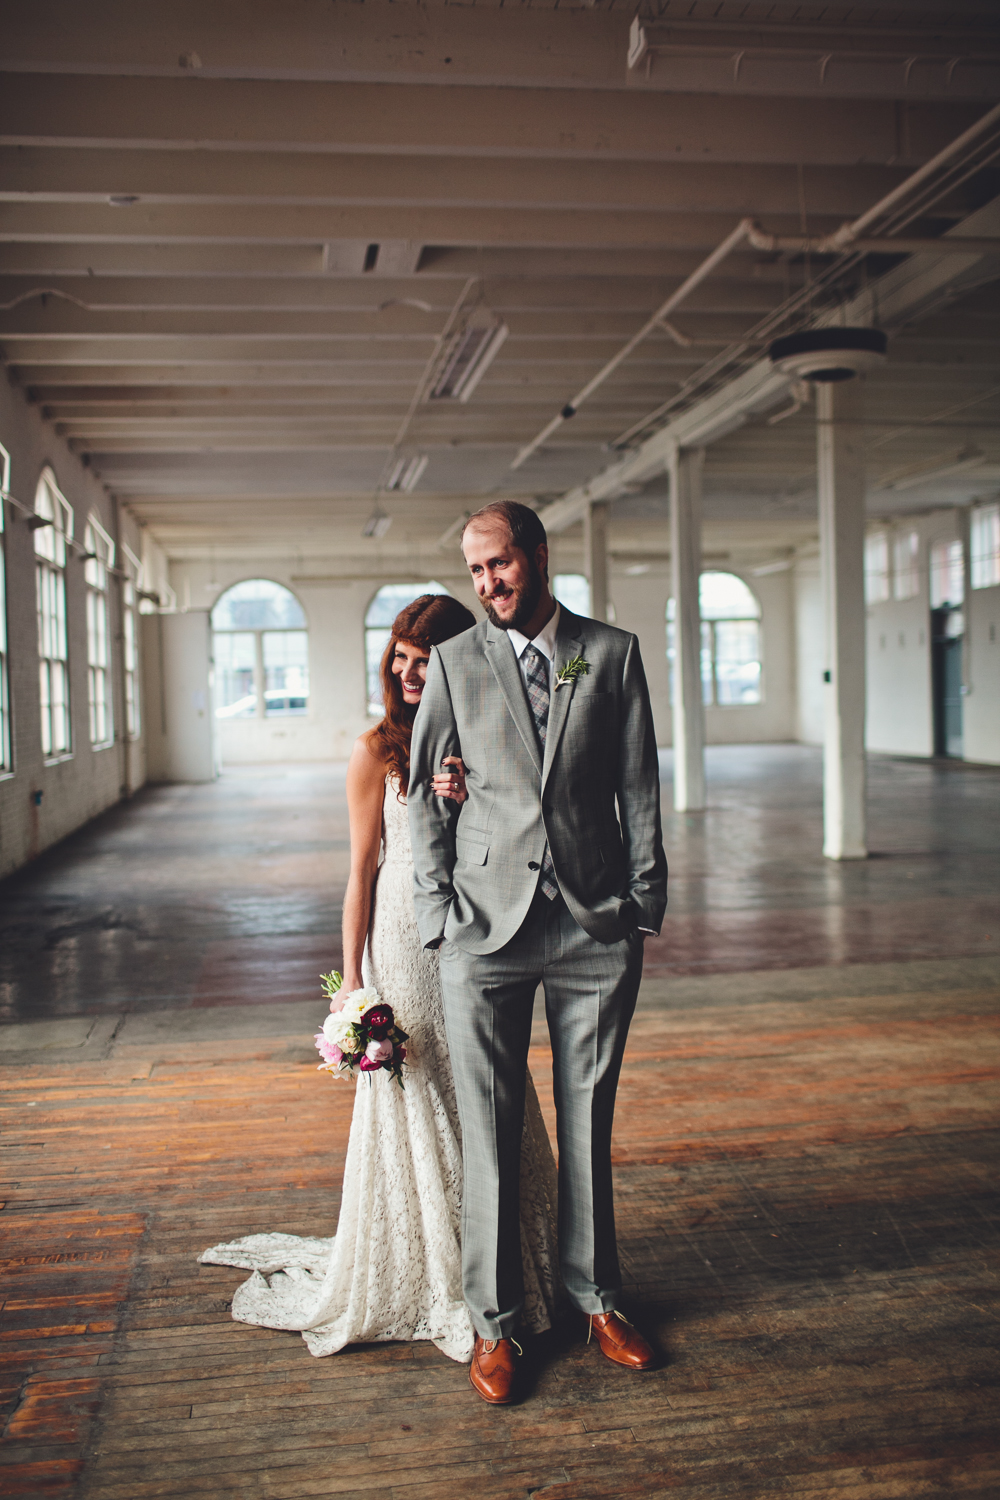 Braden + Rachel // See their wedding featured on f eatured on   Style Me Pretty .